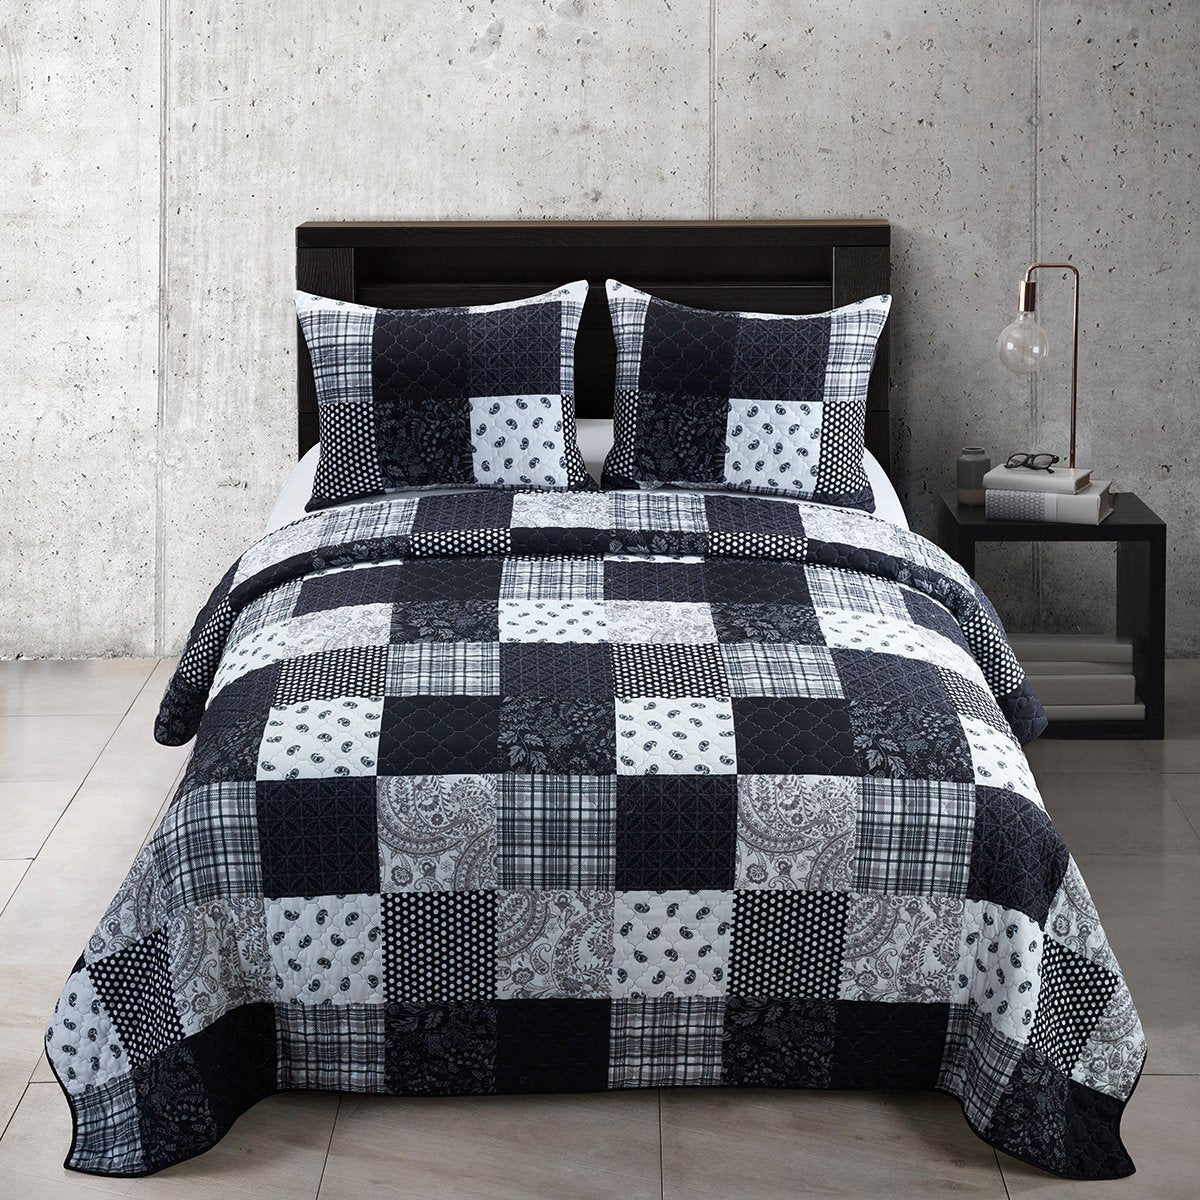 London Reversible 3-Piece Quilt Set [Luxury comforter Sets] [by Latest Bedding]